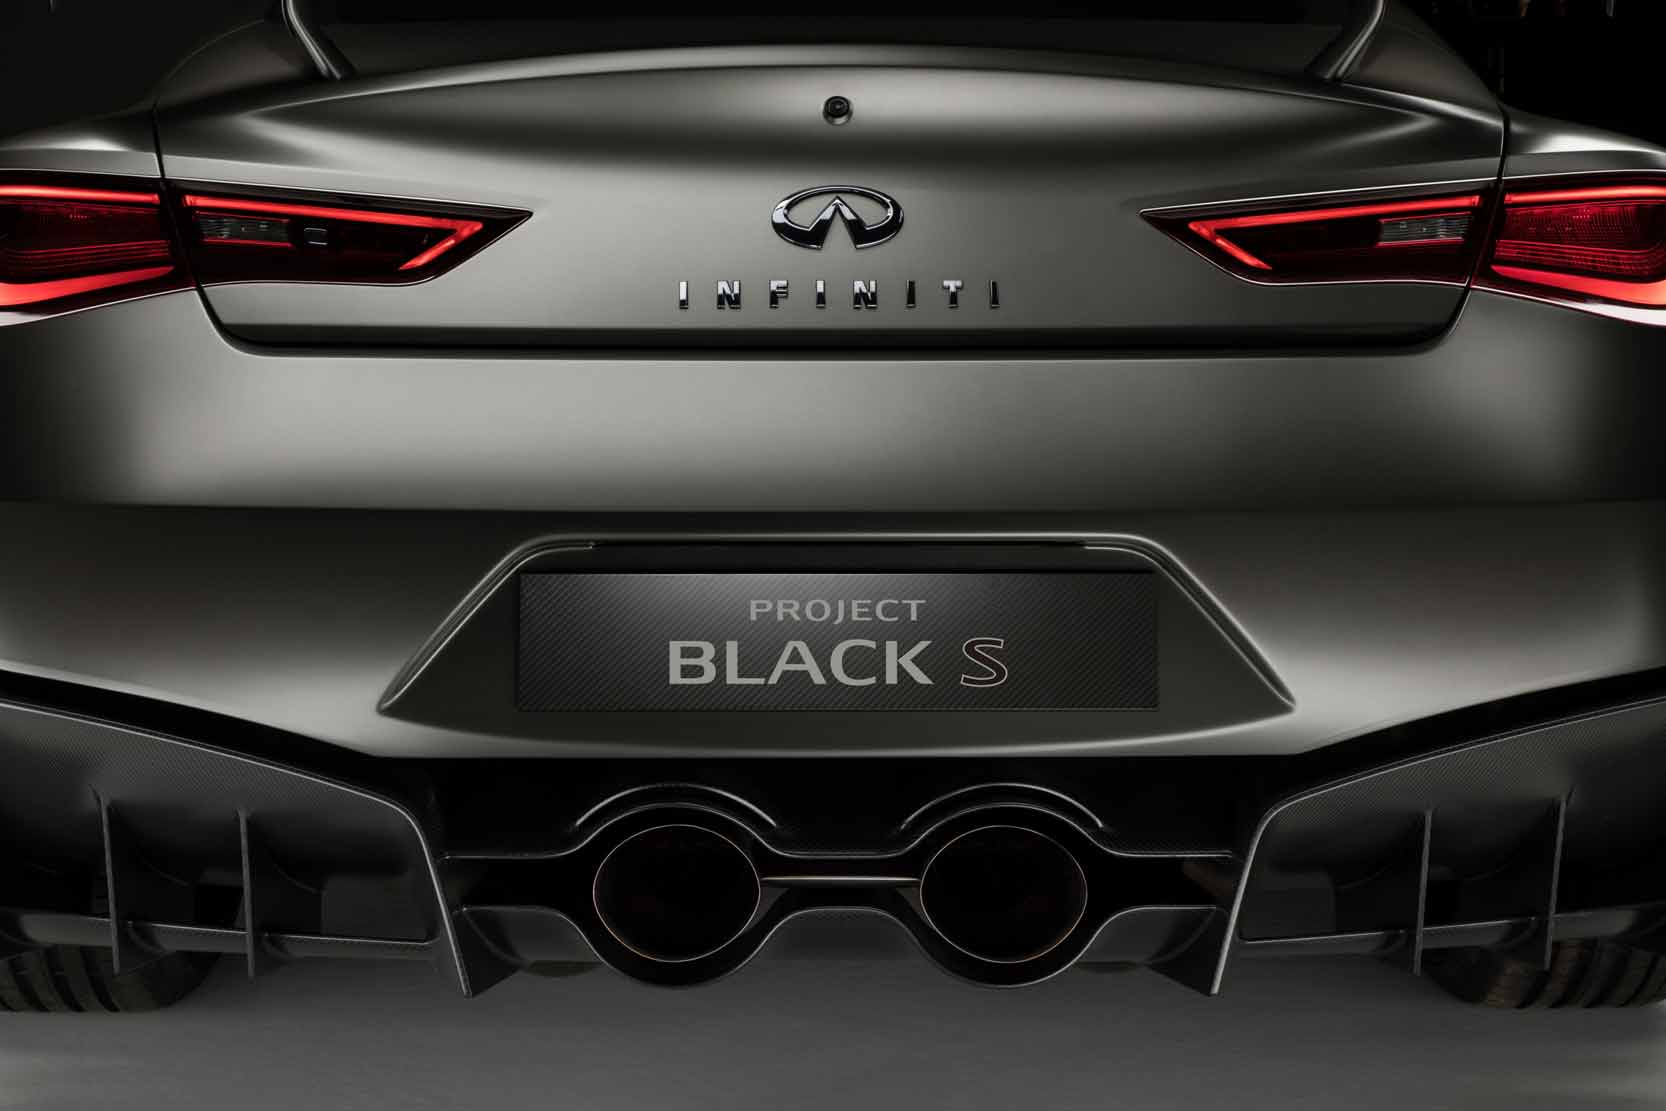 Exterieur_Infiniti-Project-Black-S_14